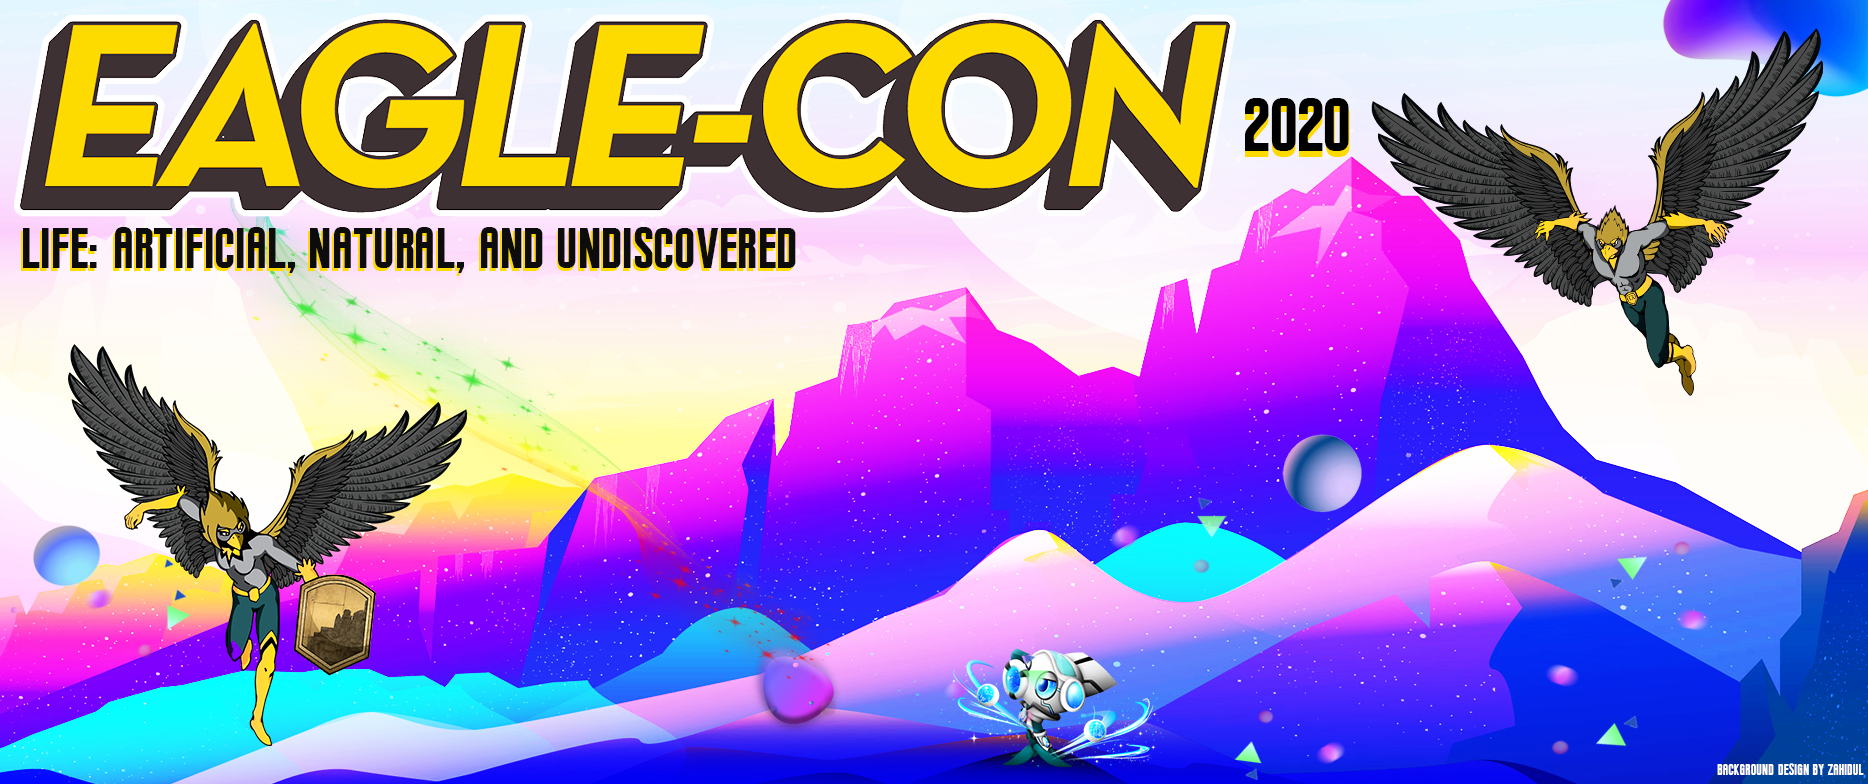 Eagle-Con 2020 Life: Artificial, Natural and Undiscovered